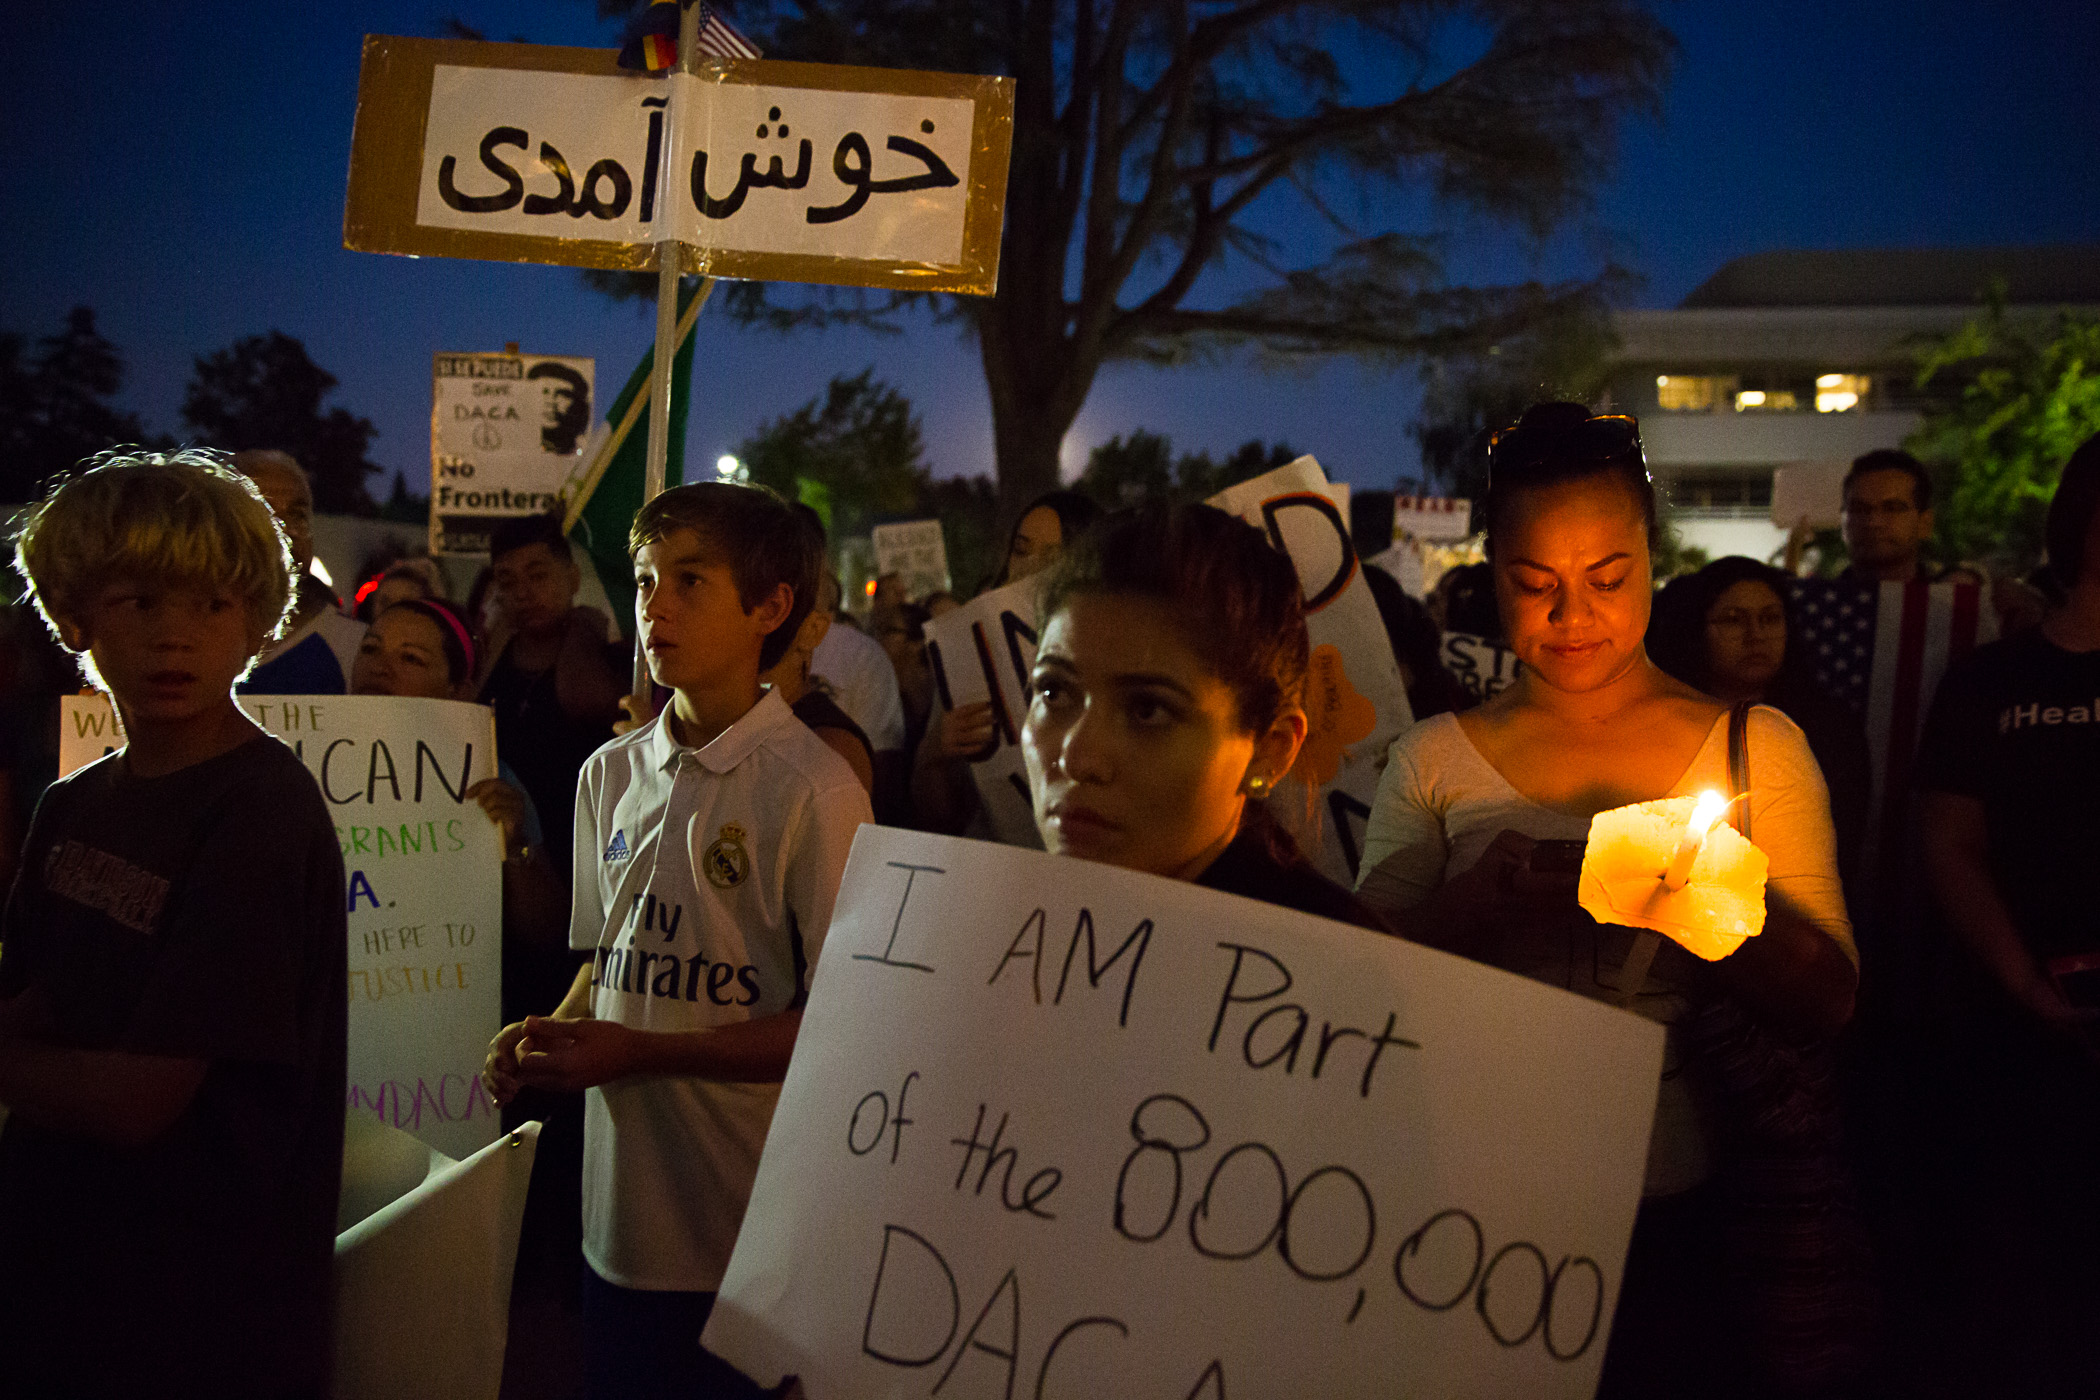 A crowd gathers at the Mountain View Civic Center for a candlelight vigil in support of the Deferred Action for Childhood Arrivals program on Sept. 5, 2017. Photo by Michelle Le.